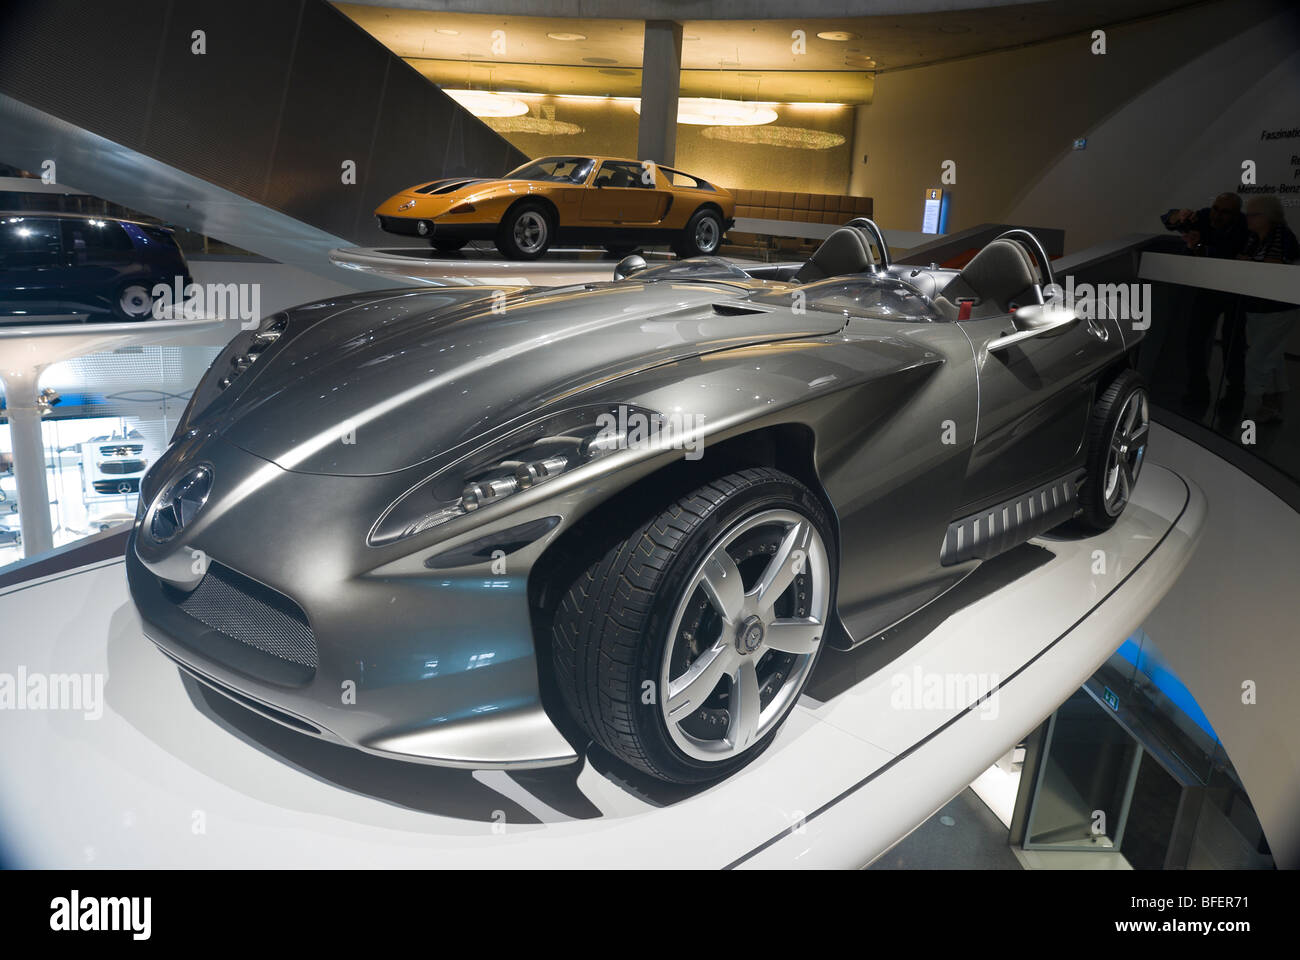 Mercedes F400 concept car, in the Mercedes Benz museum. Stuttgart, Germany. - Stock Image